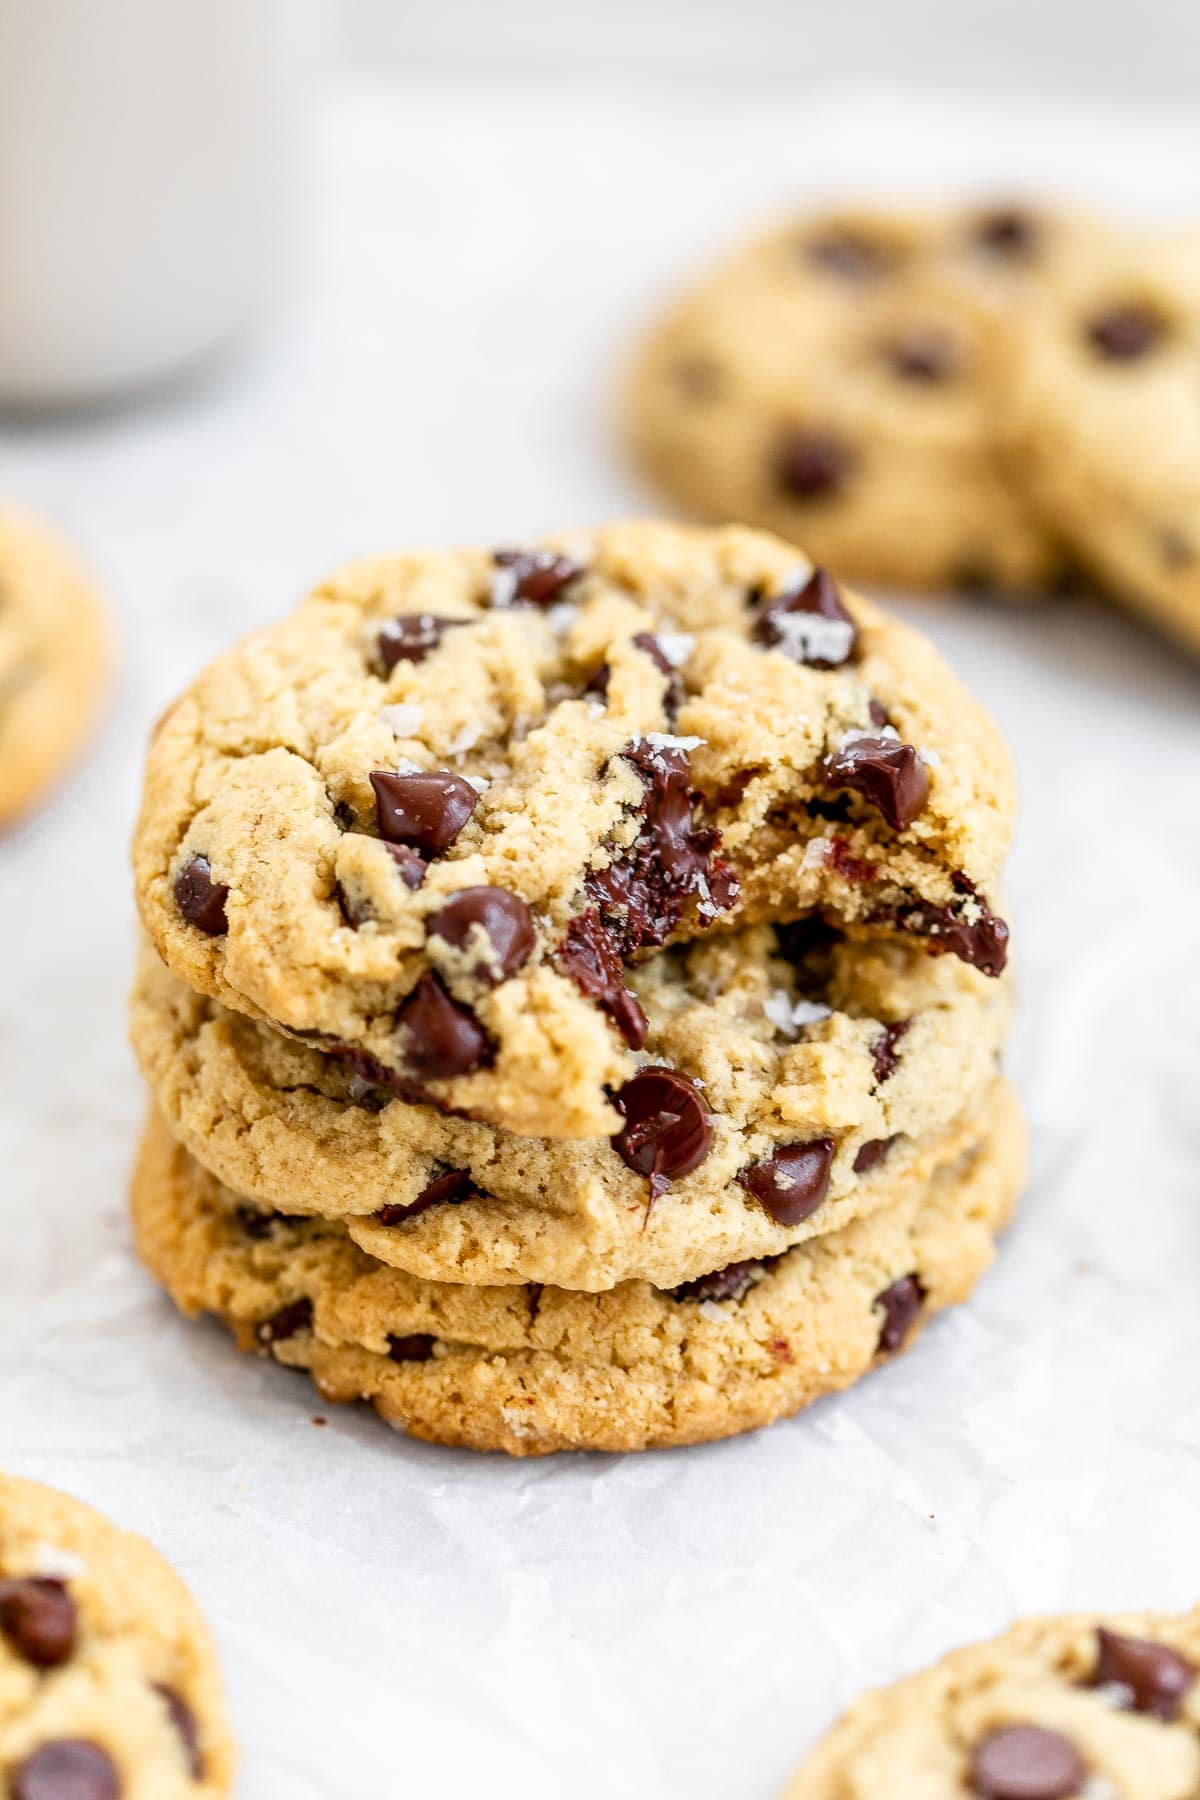 Three almond flour cookies stacked on each other with melted chocolate.